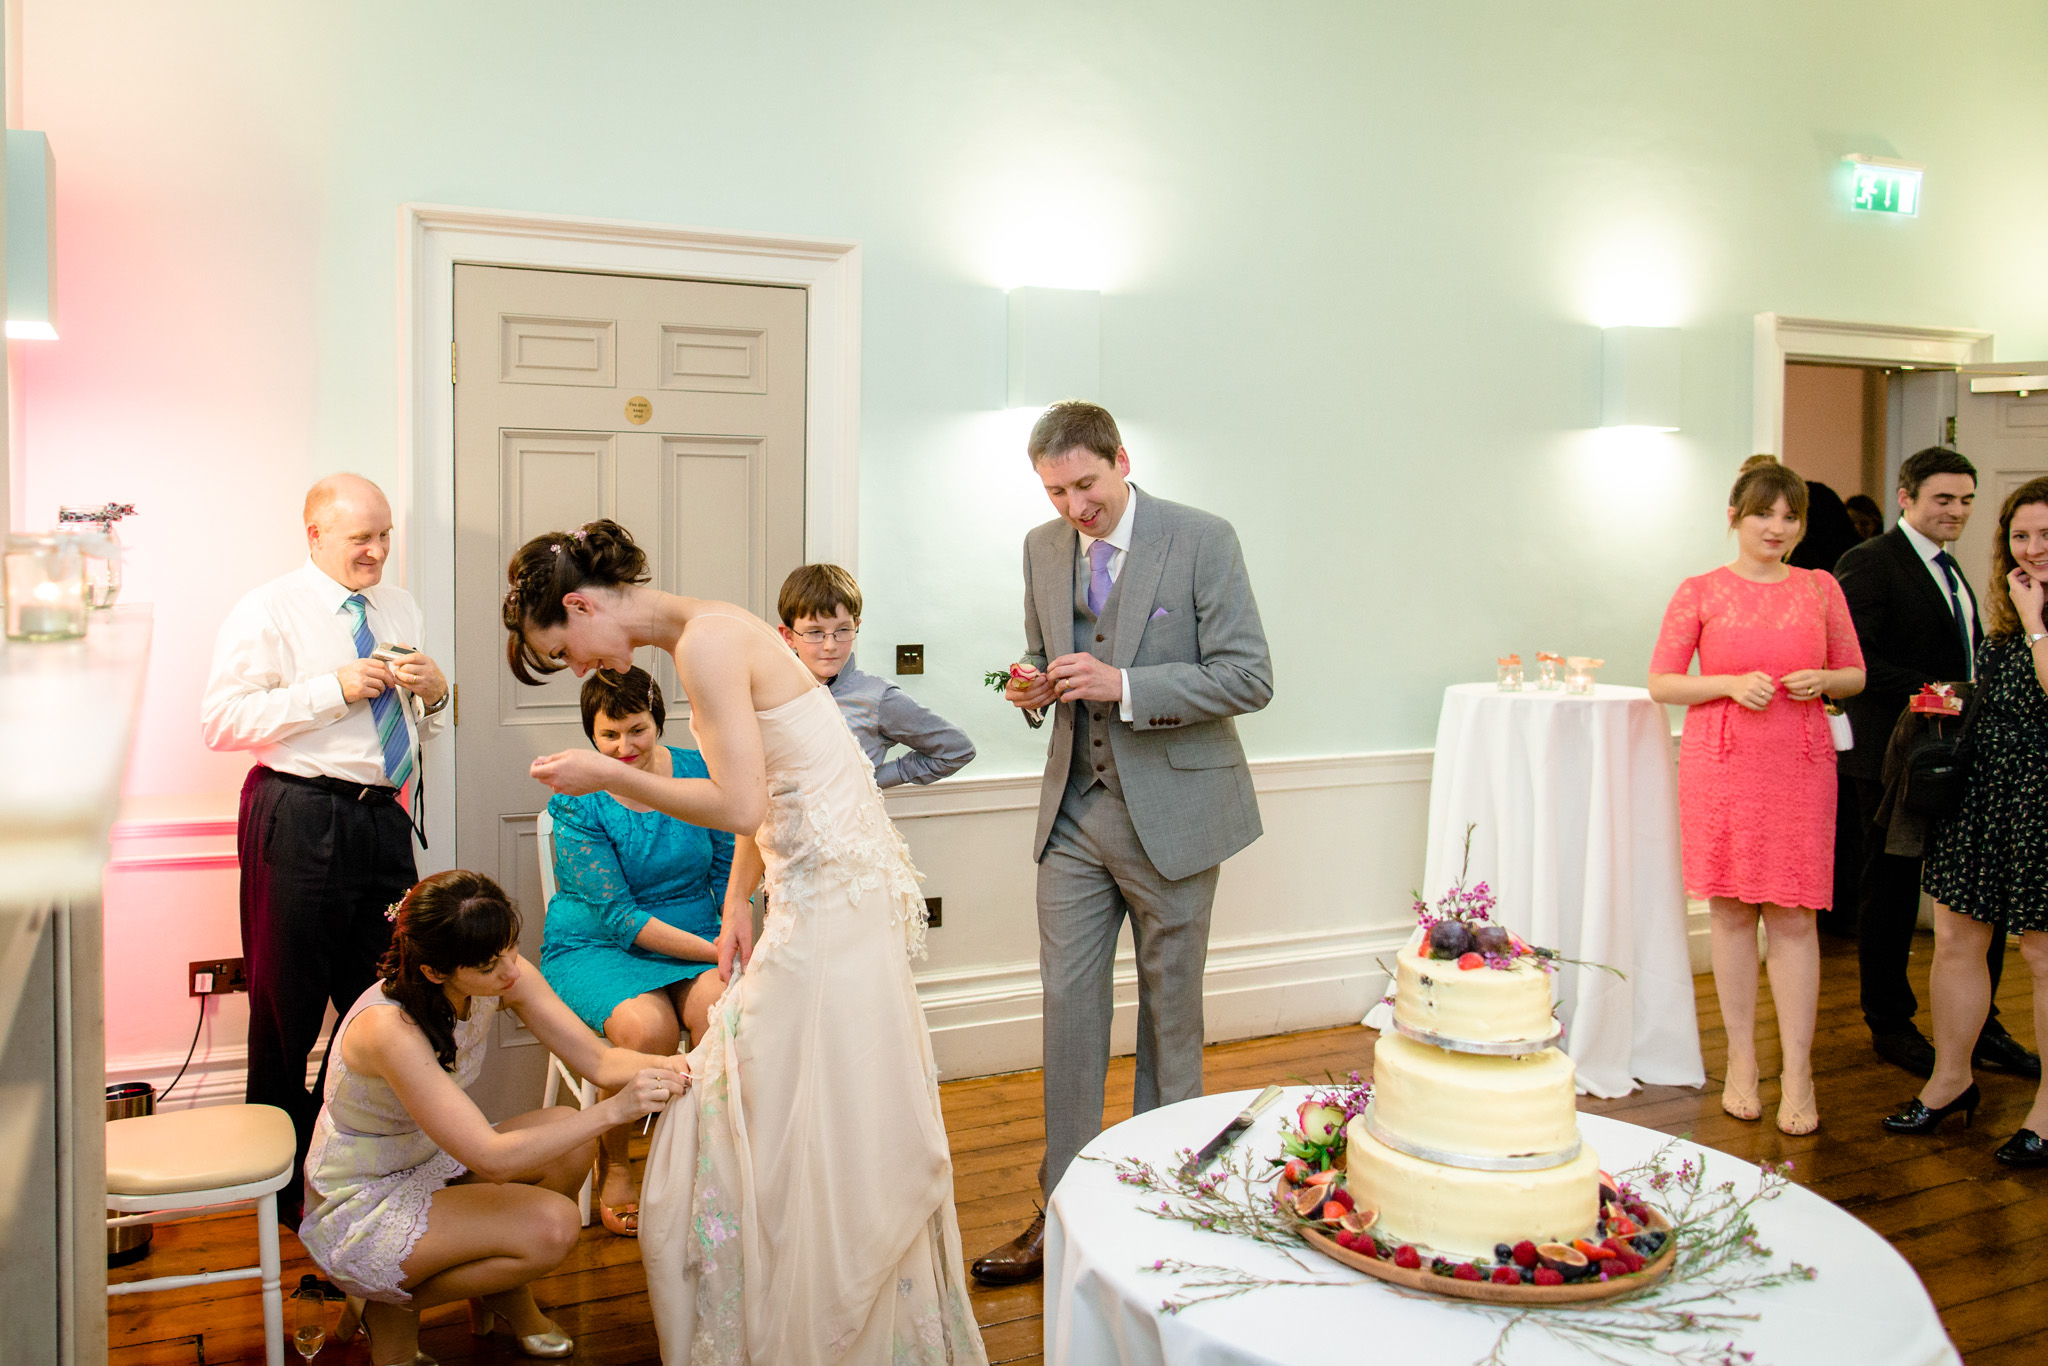 Clissold House wedding room with cake